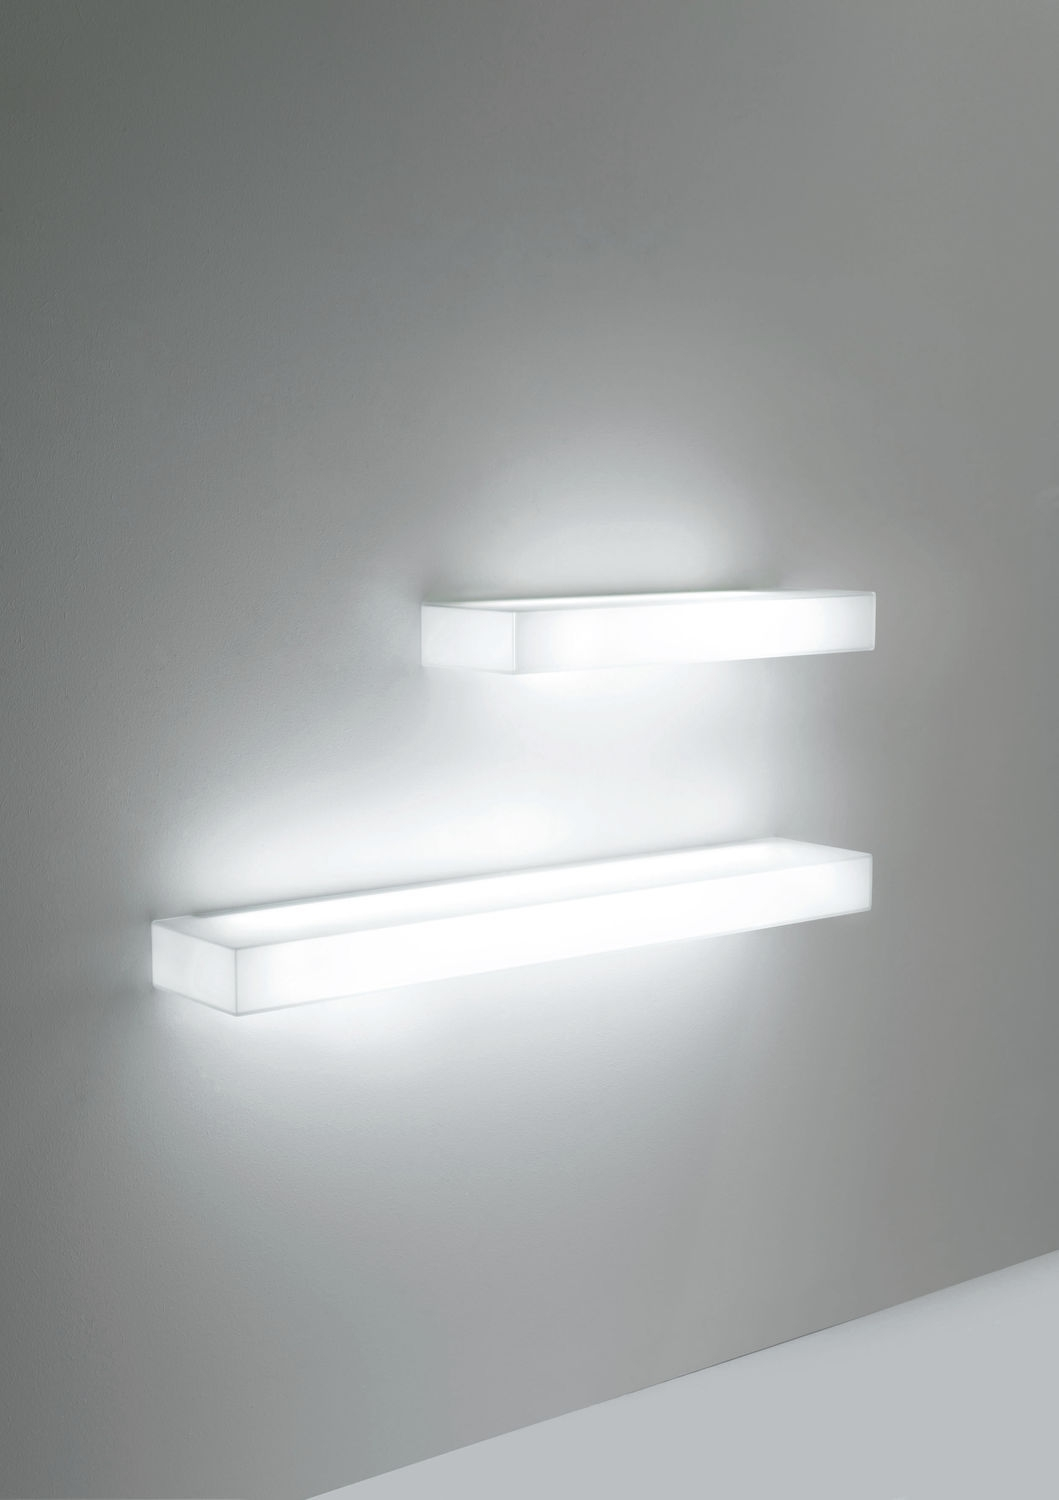 Wall Mounted Shelf Contemporary Glass Illuminated Light With Illuminated Glass Shelf (Image 14 of 15)